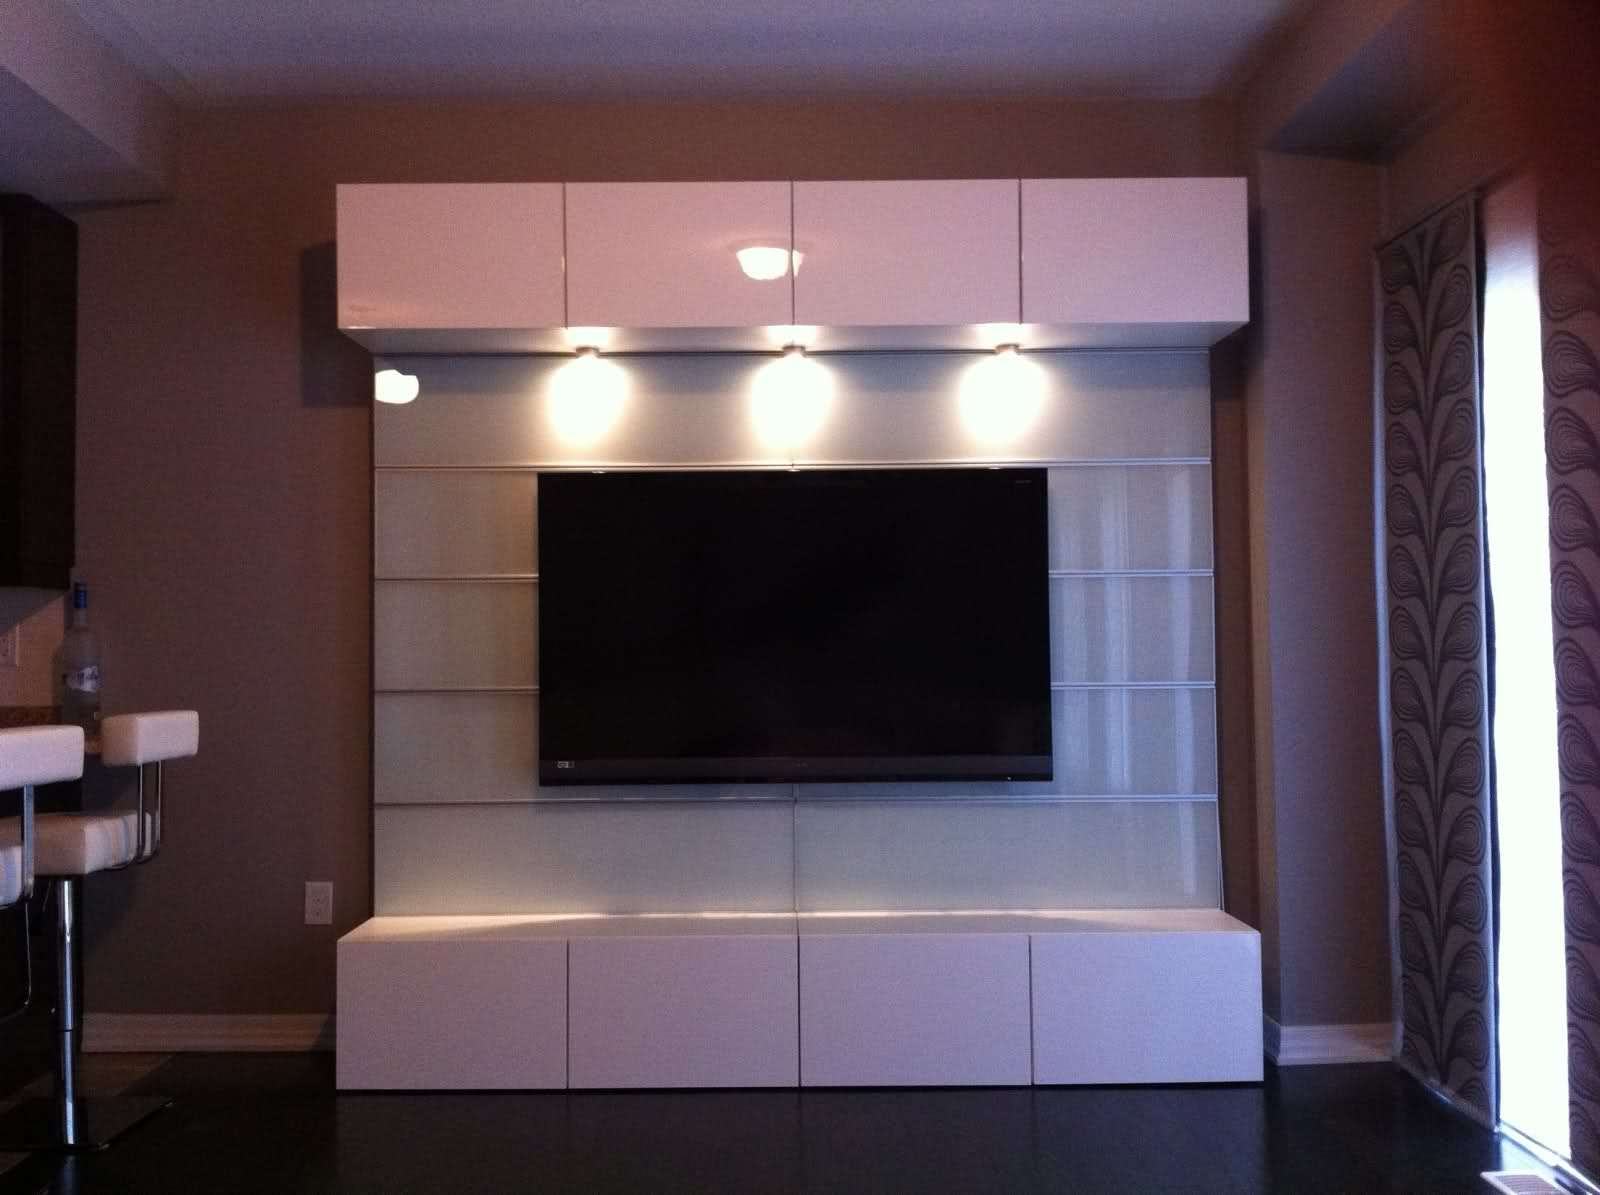 Ikea Wall Shelf – Wall Units Design Ideas : Electoral7 With Regard To Wall Mounted Tv Cabinets Ikea (View 20 of 20)